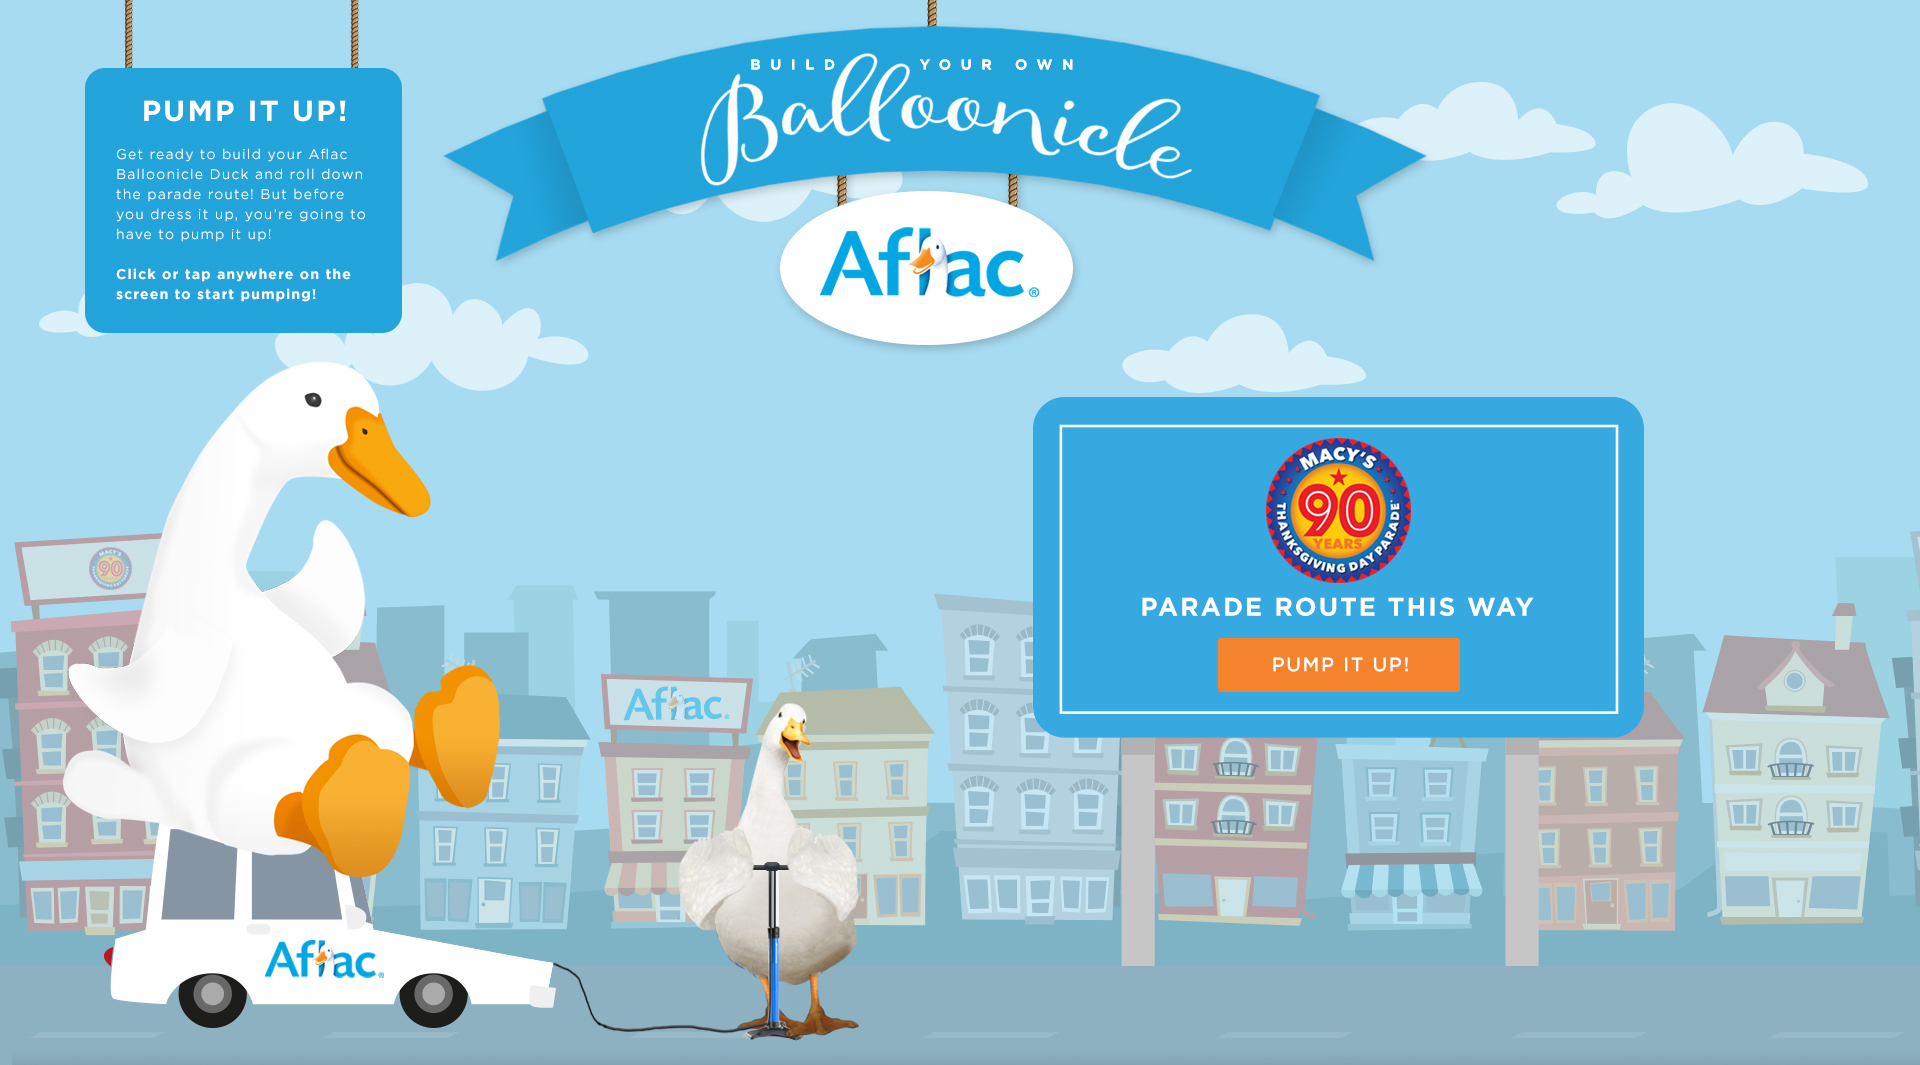 Join Aflac in the fight against childhood cancer and create your very own balloonicle in the Build Your Own Balloonicle game developed by Aflac.